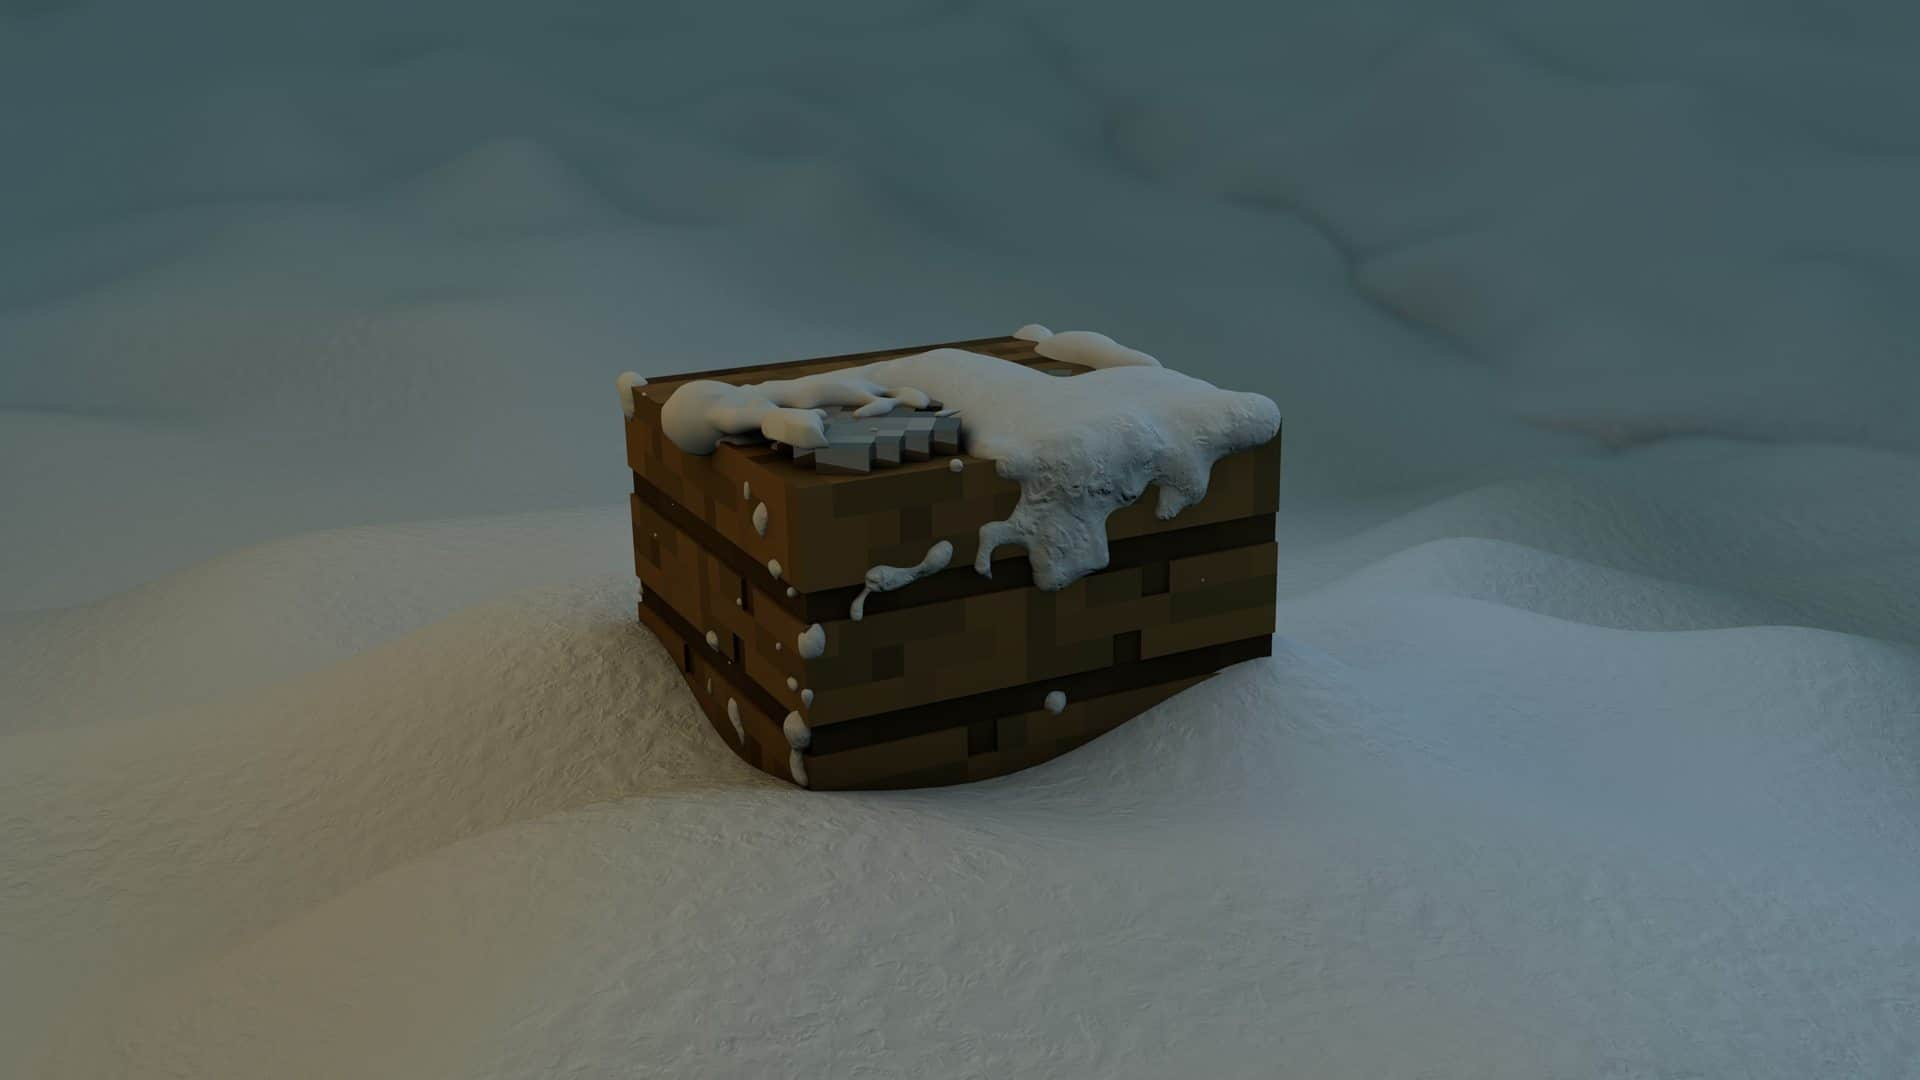 minecraft_in_winter_by_fazadeanimations-d81bkwt